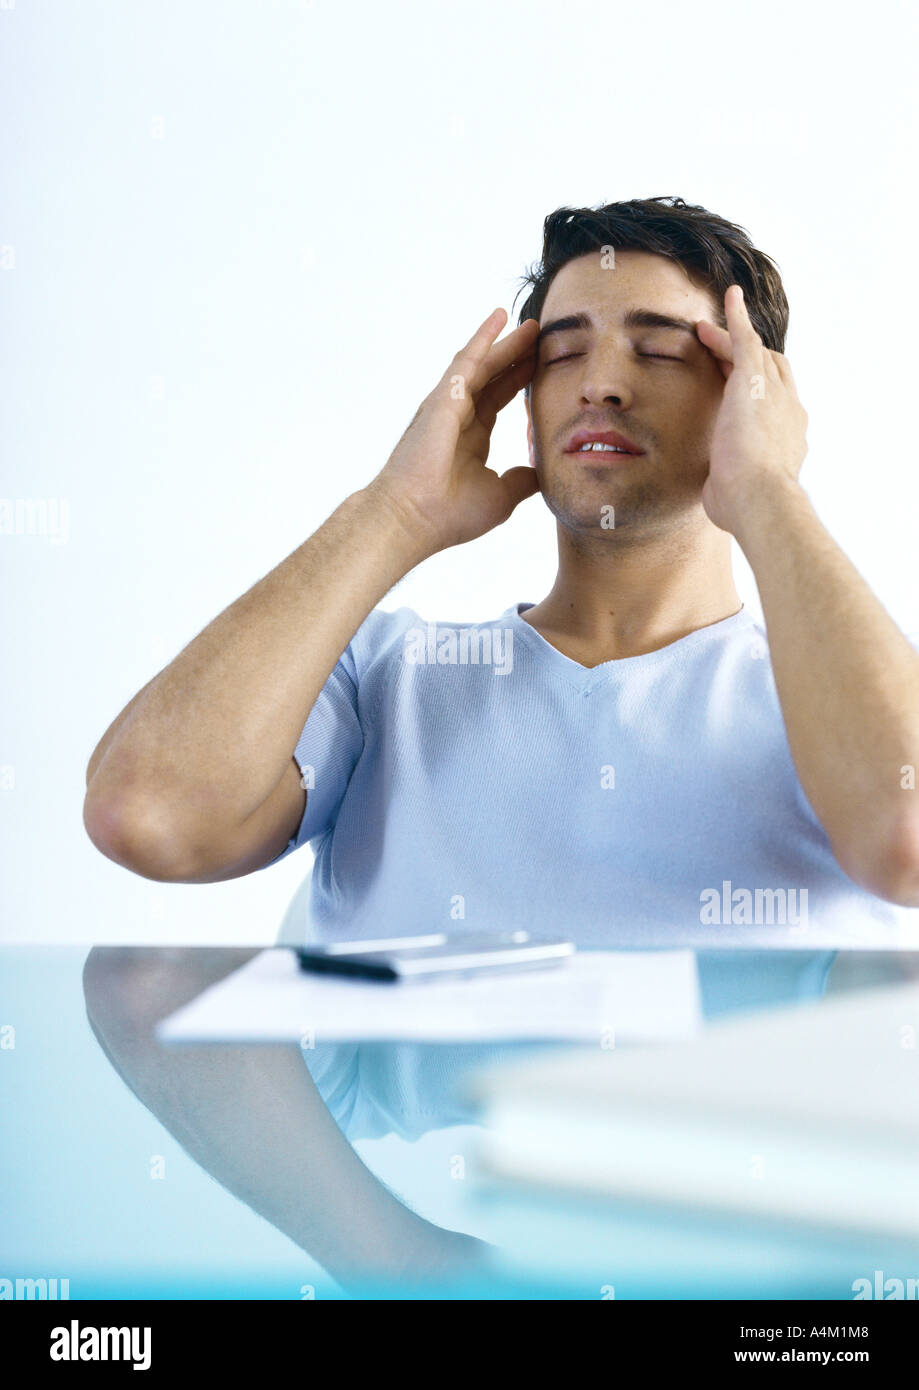 Man sitting at table, rubbing head - Stock Image